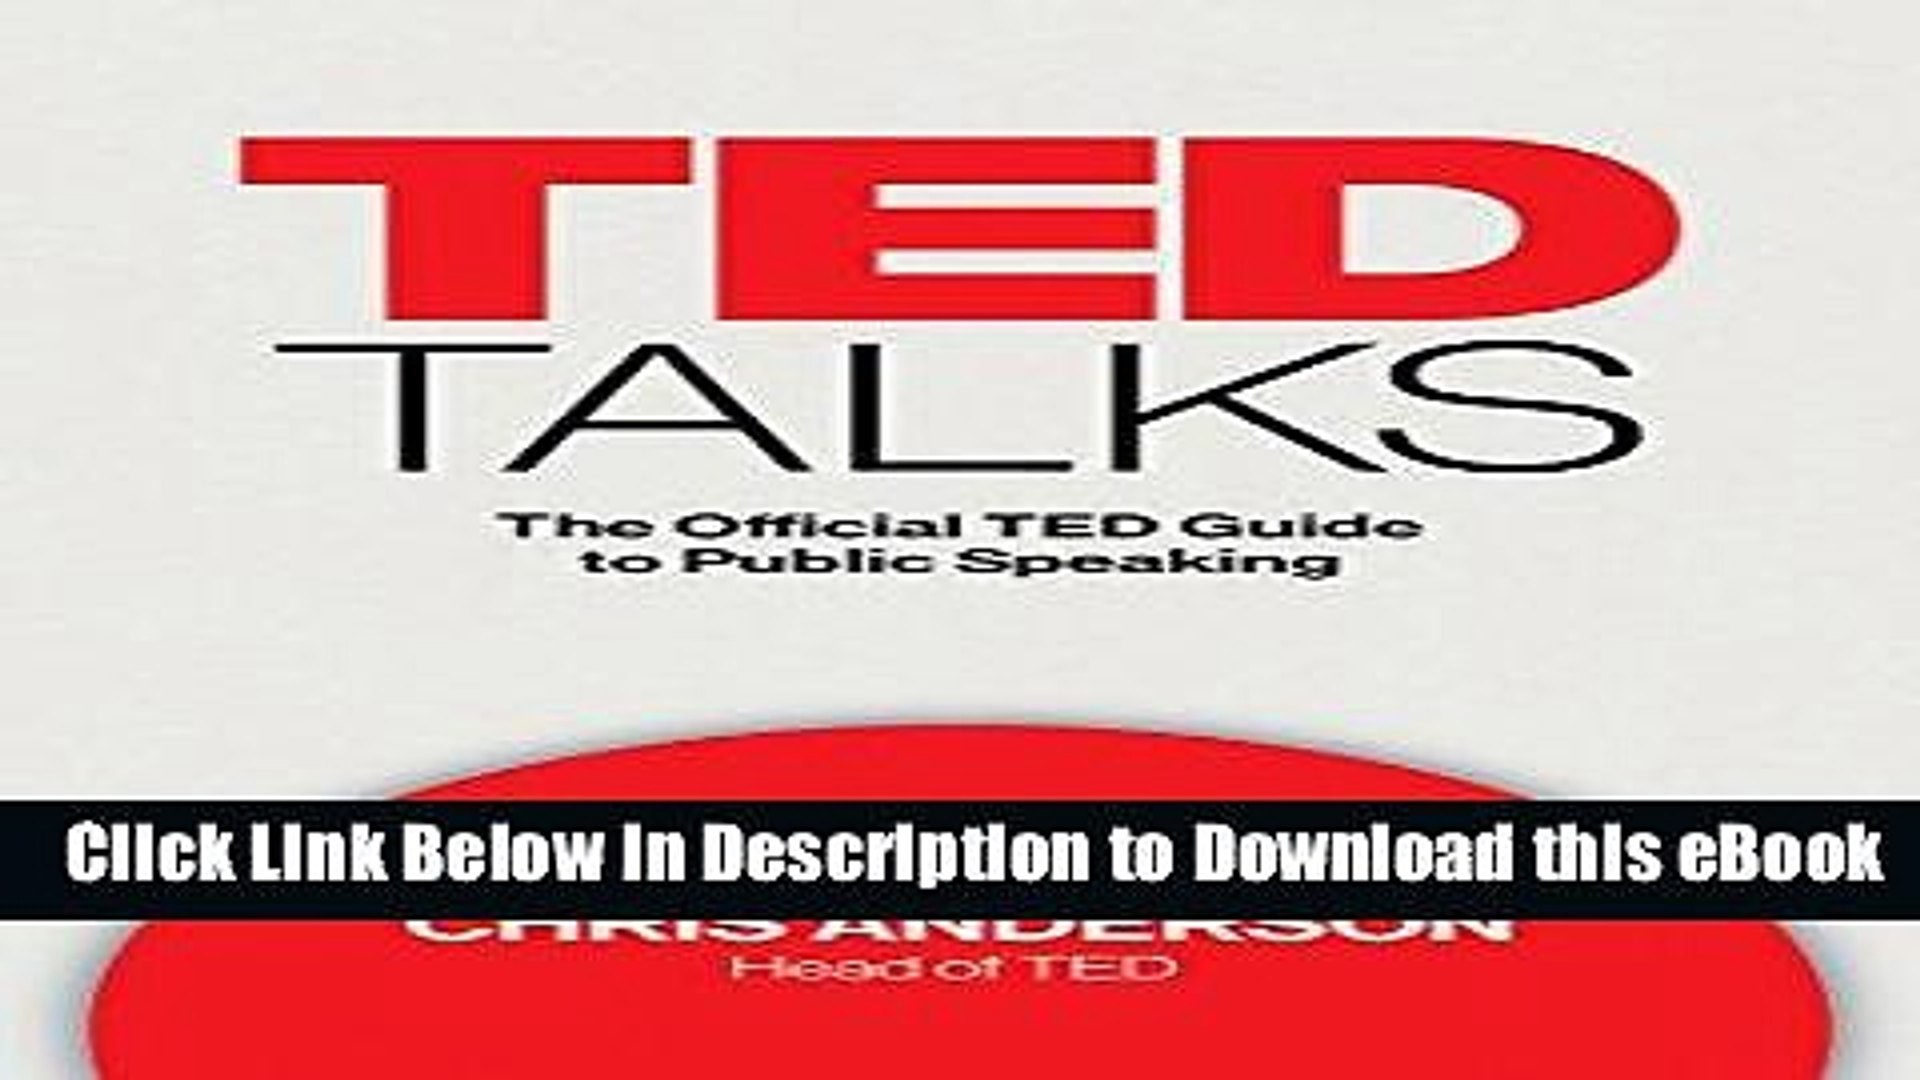 [Download] TED Talks: The Official TED Guide to Public Speaking Free Online